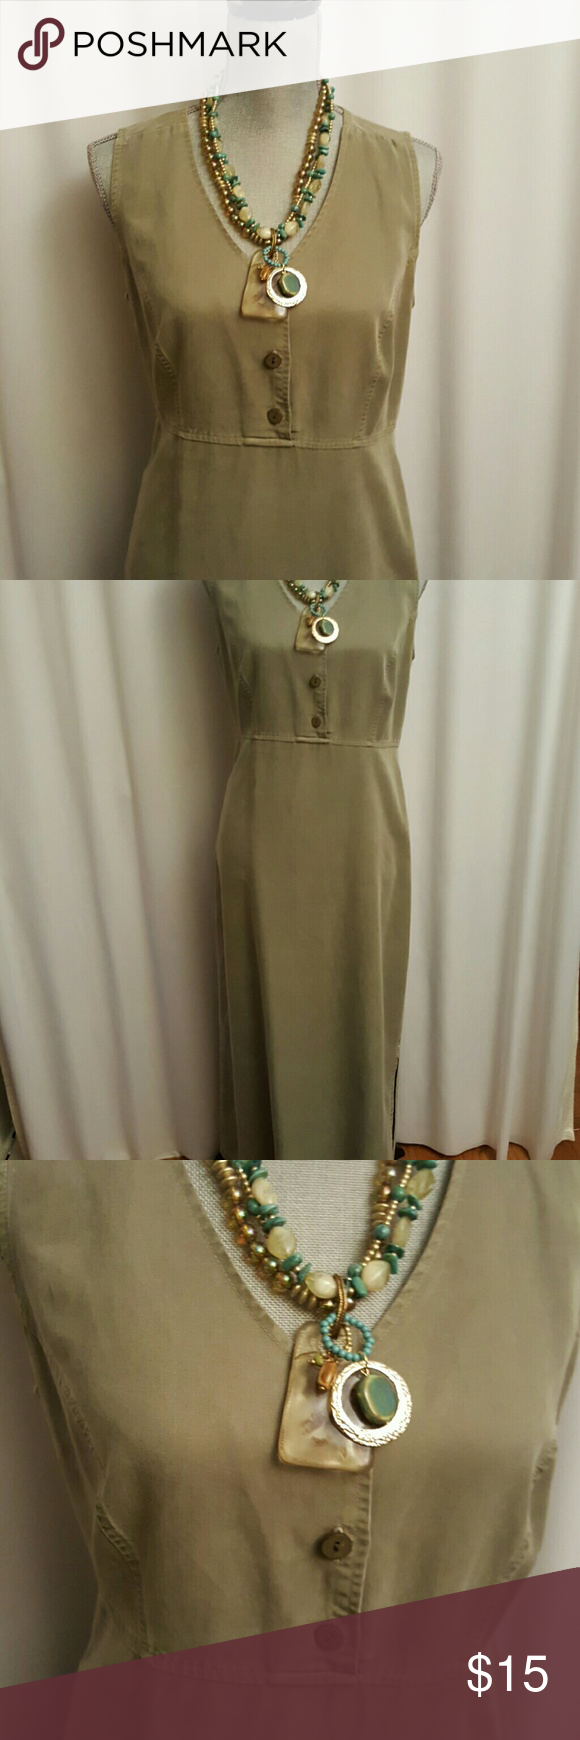 """PALE OLIVE CASUAL SLEEVELESS DRESS The pictures do not do justice to this dress, the fabric is Tencel/Lyocel, very soft with an almost suede-like appearance.  It is too small or I would keep it.  It has a slit on one side on the skirt.  It also matches the jacket I have for sale (you could bundle and save some $).  It's between a midi and a maxi, length shoulder to hem is 51.5"""" AKS Dresses"""